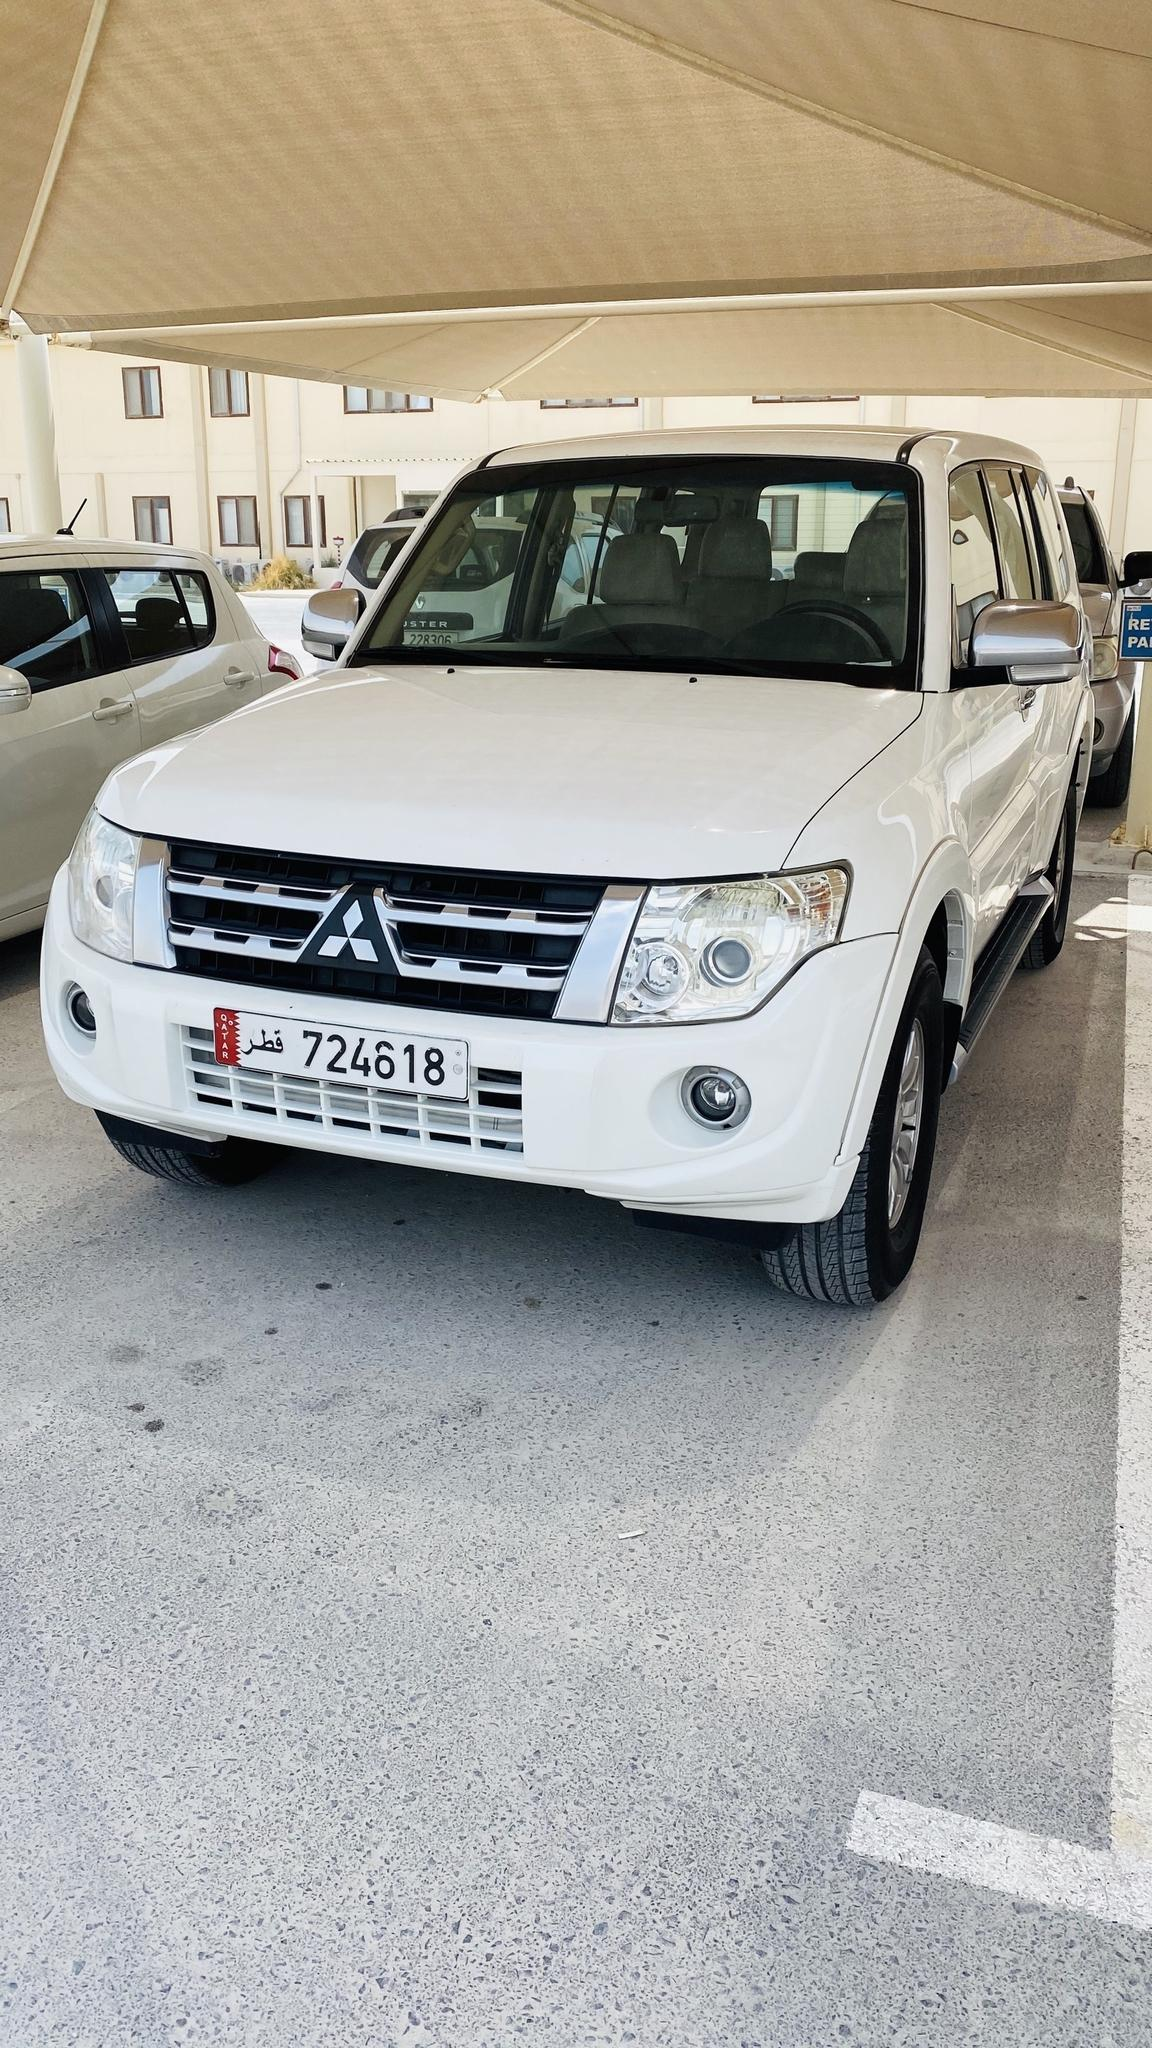 Family Used Pajero 3.5L (6 Cylinder) for Sale